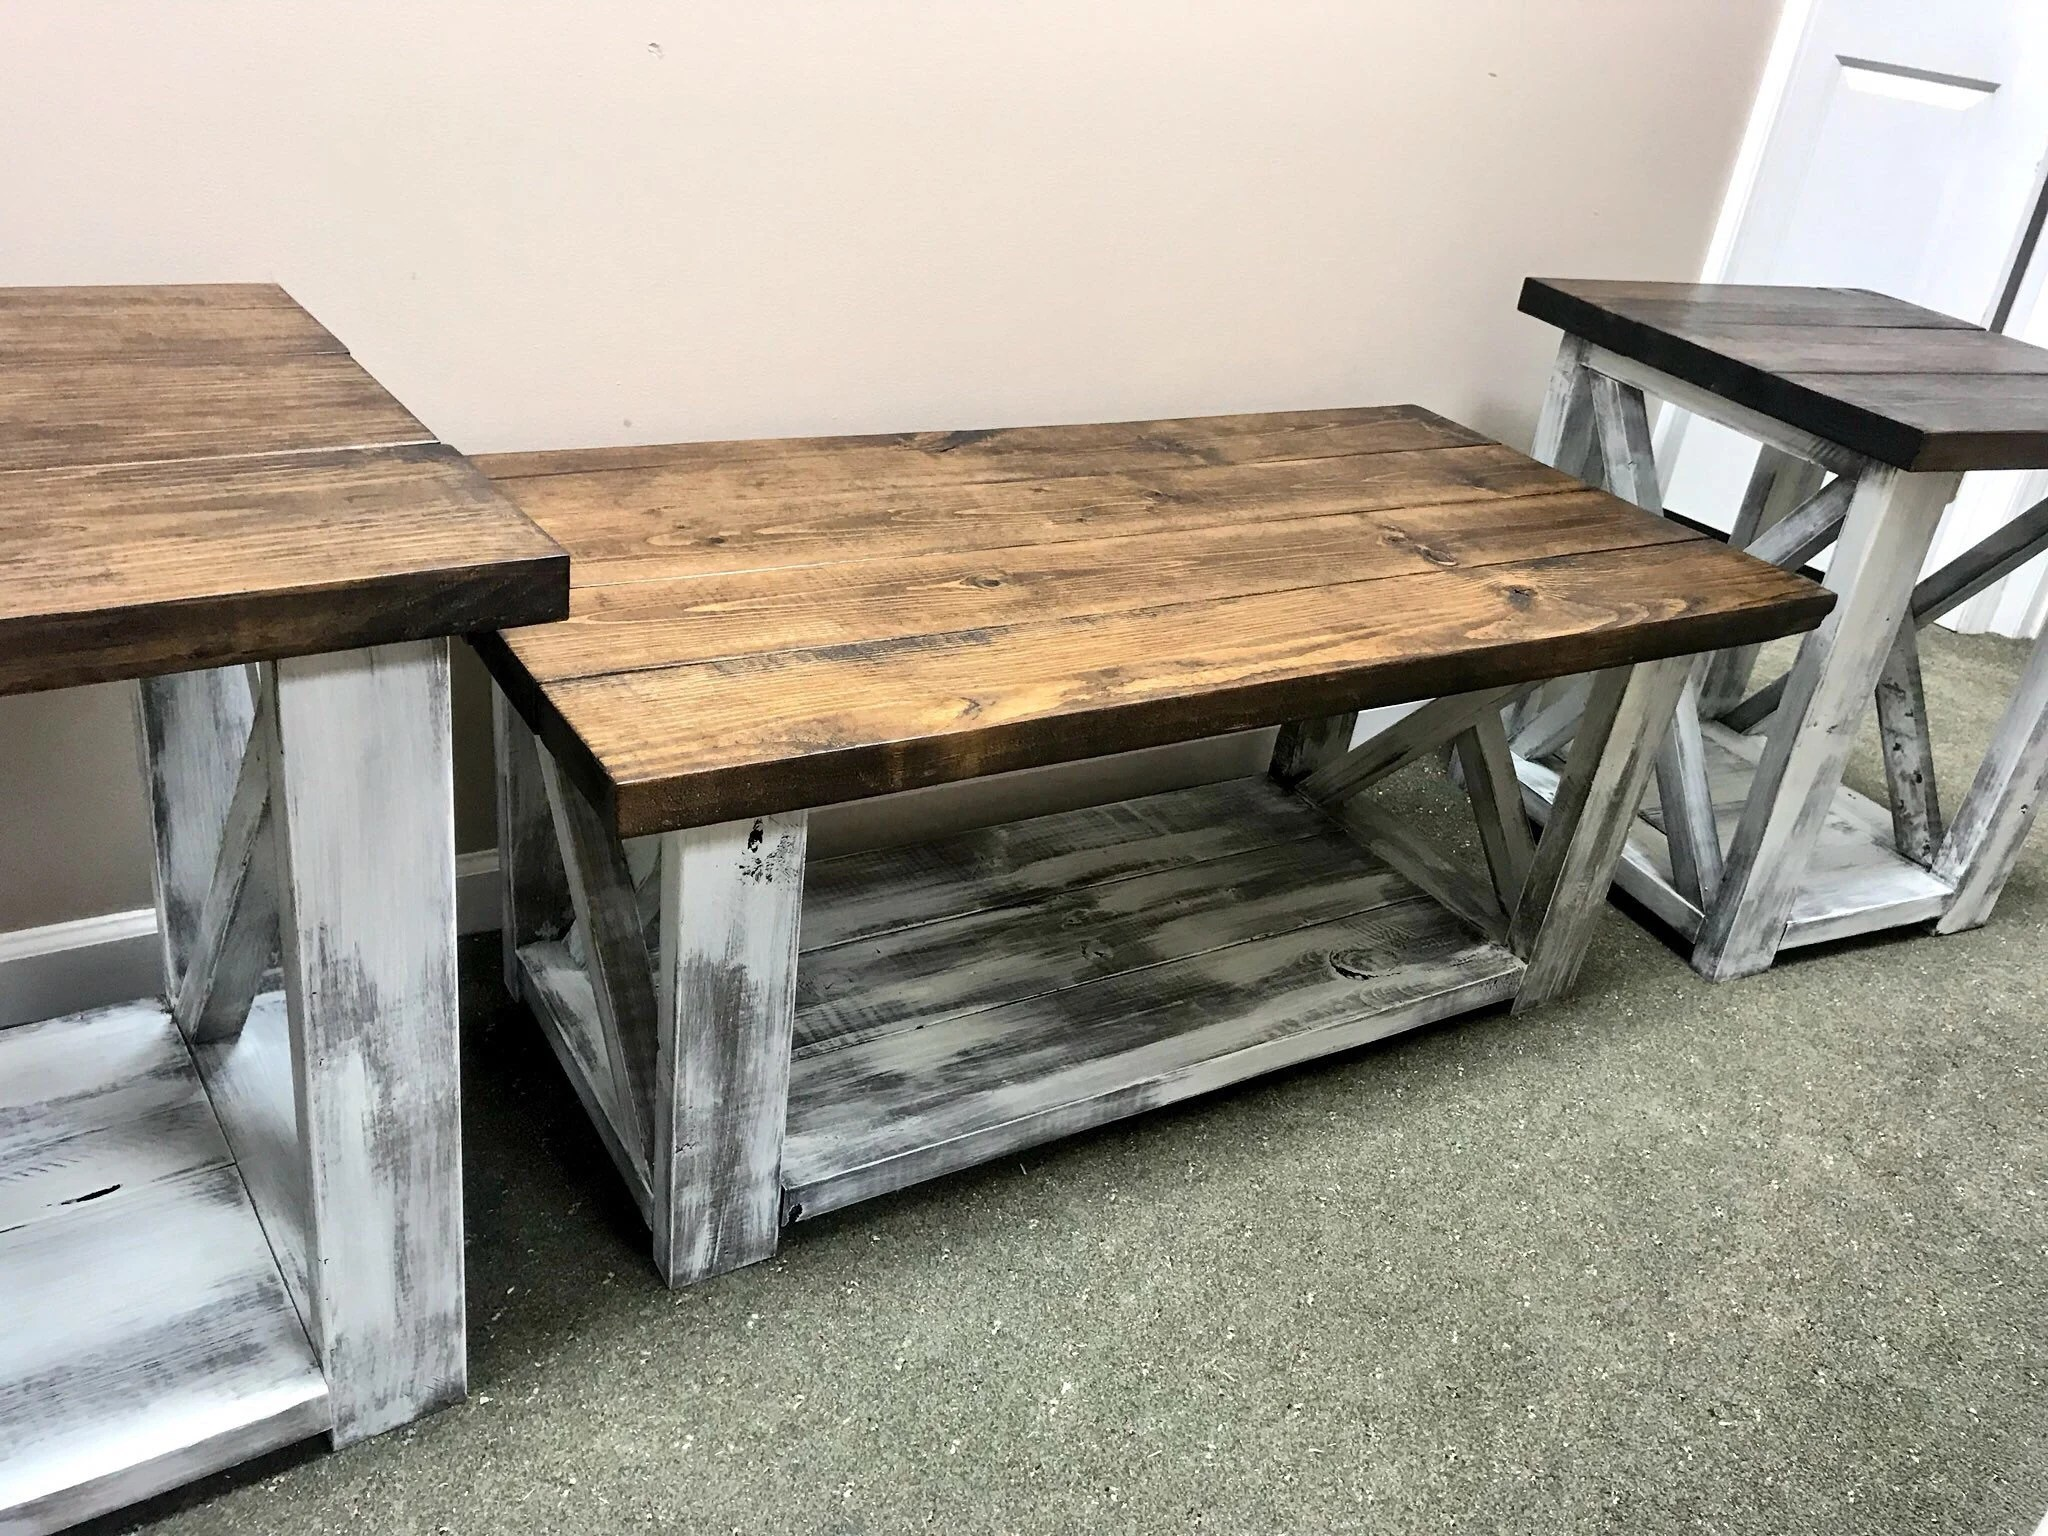 End Table For Living Room Farmhouse Living Room Set End Tables Set And Coffee Table With Distressed White Base And Dark Walnut Top Rustic Living Room Furniture X